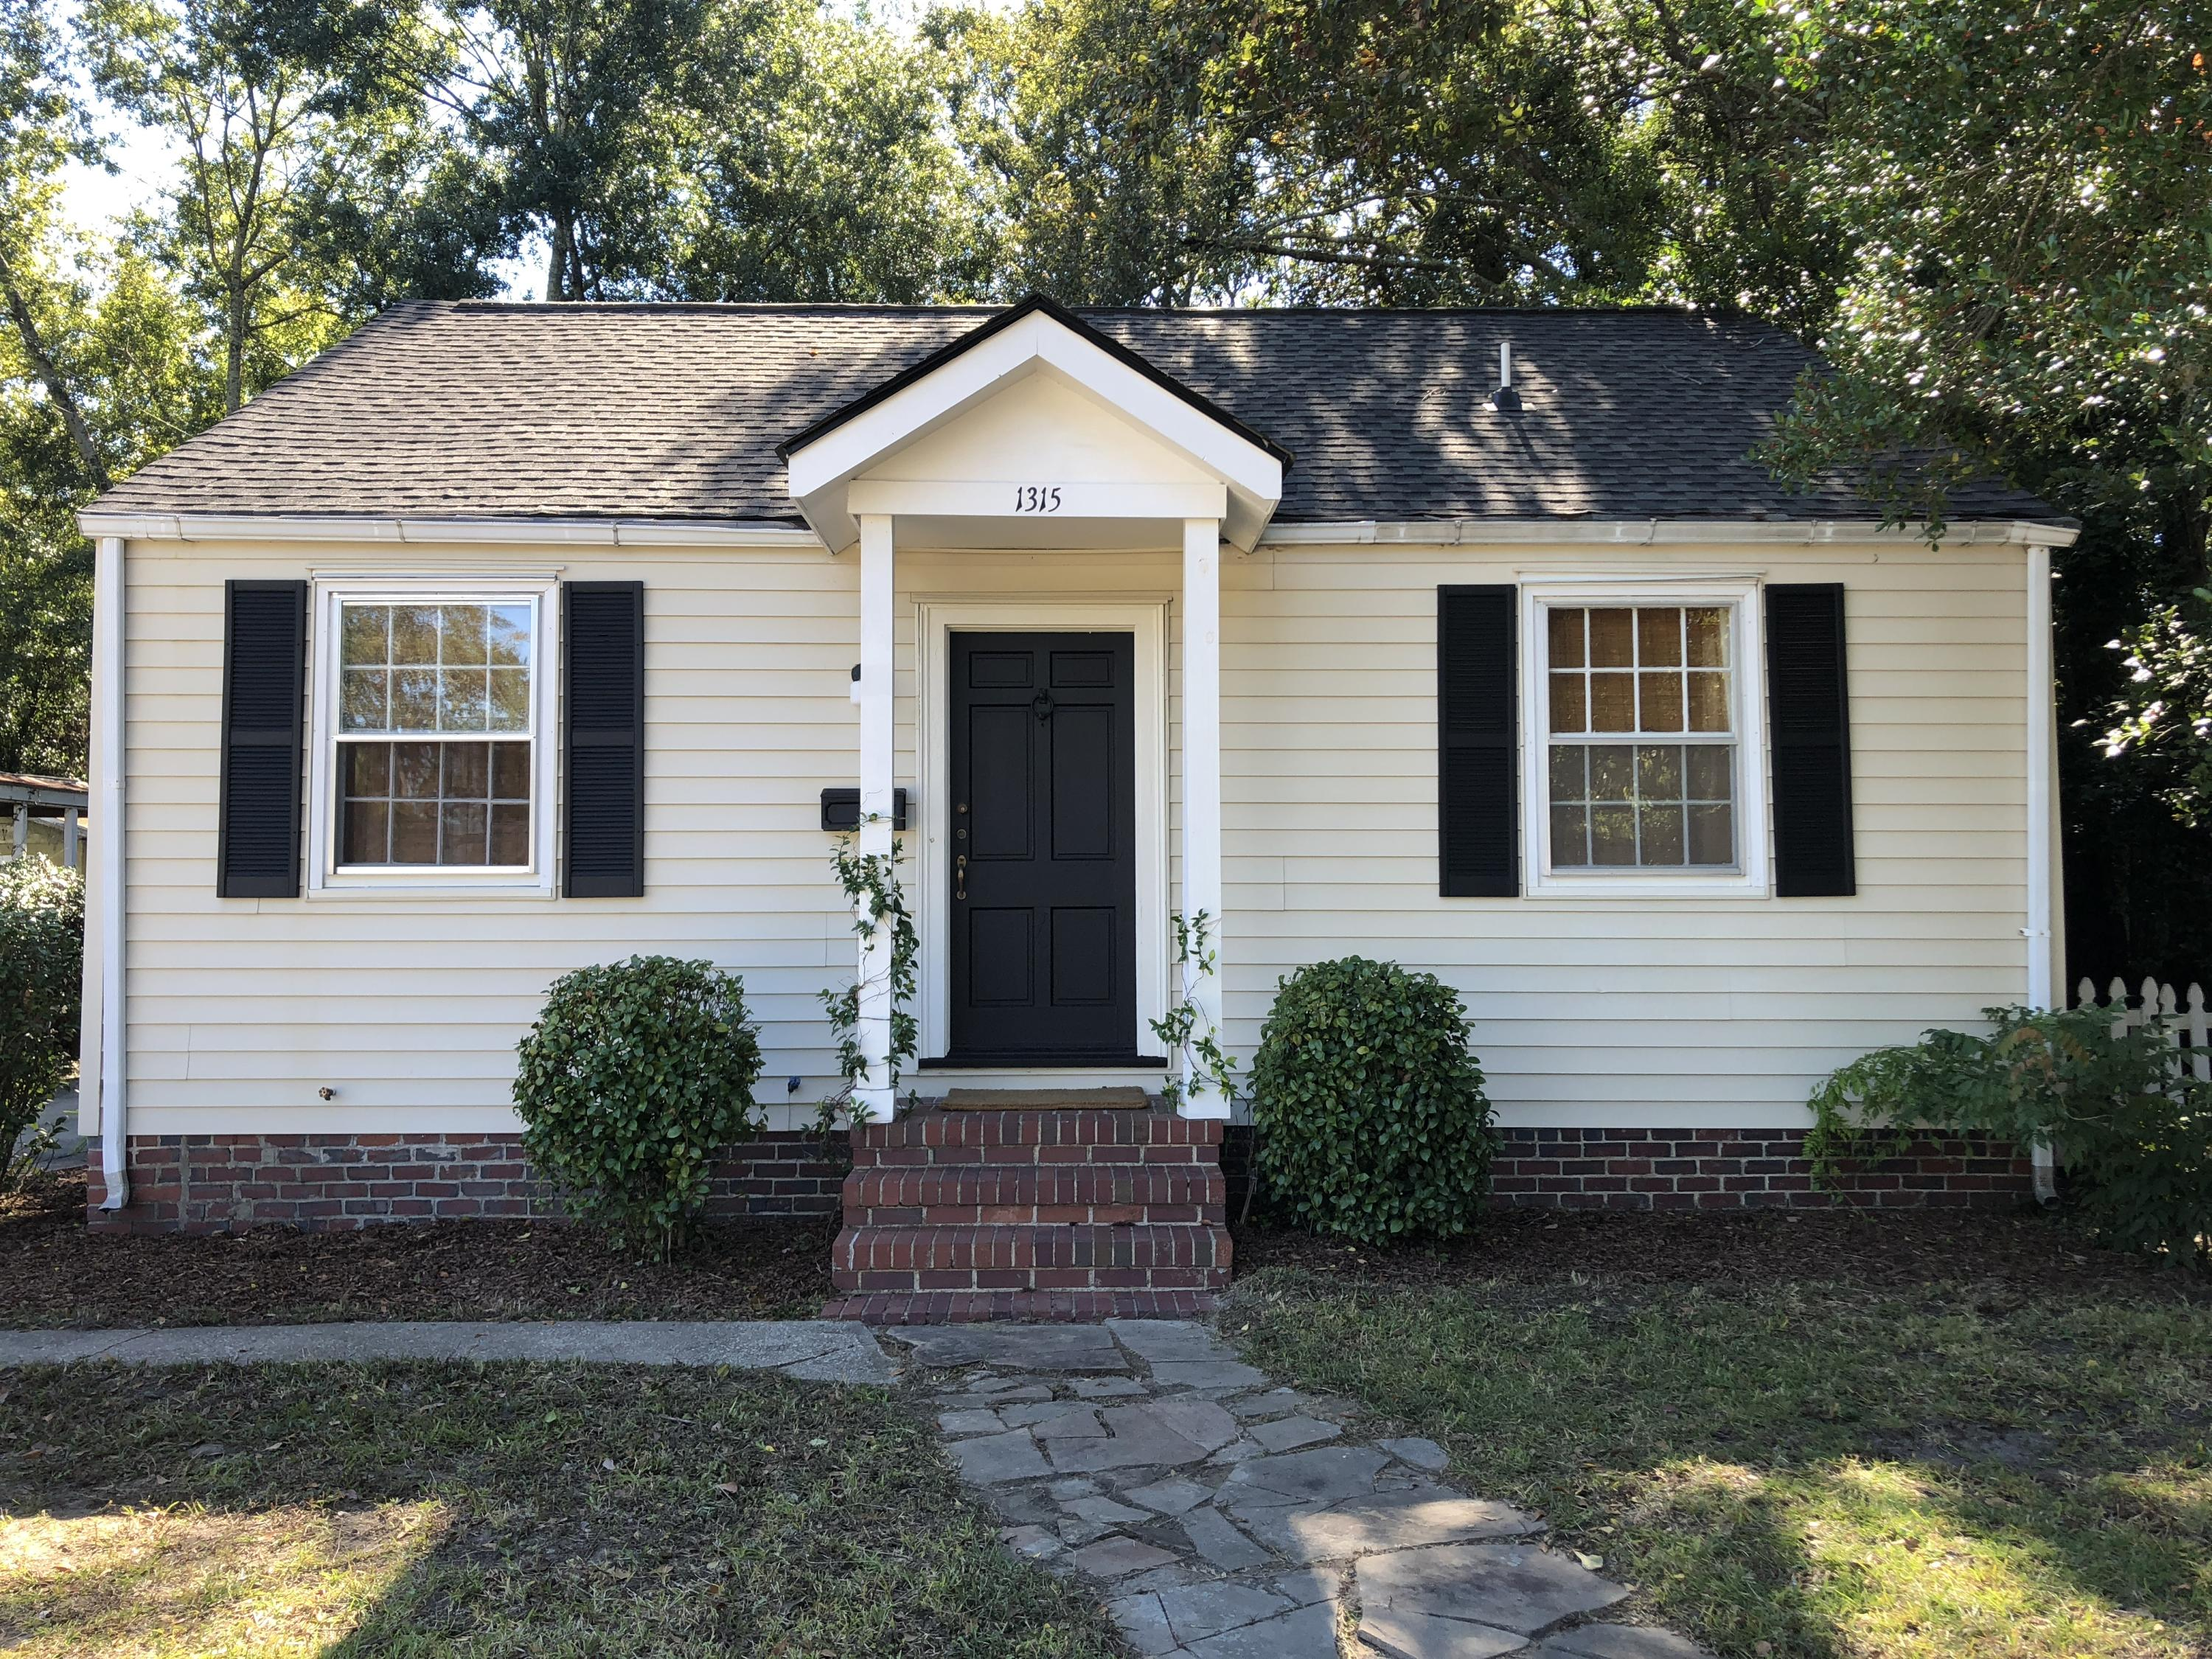 1315 E Montague Avenue North Charleston, SC 29405